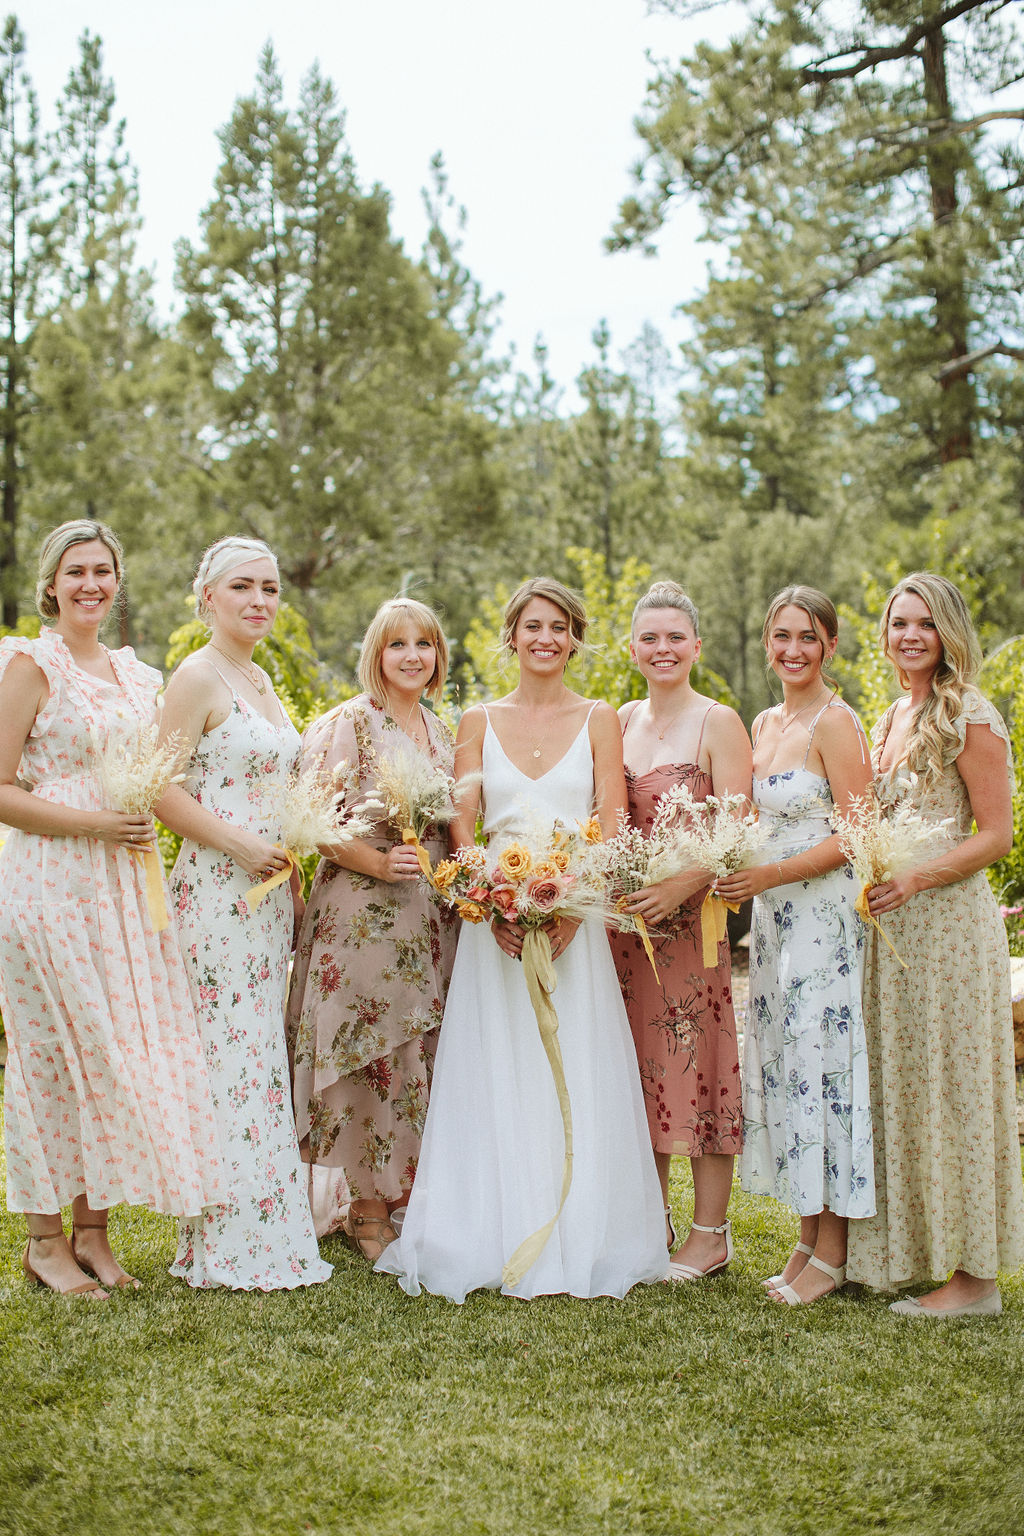 Steph + Austin Hendrix wedding by Paige Jones - floral bridesmaid dresses